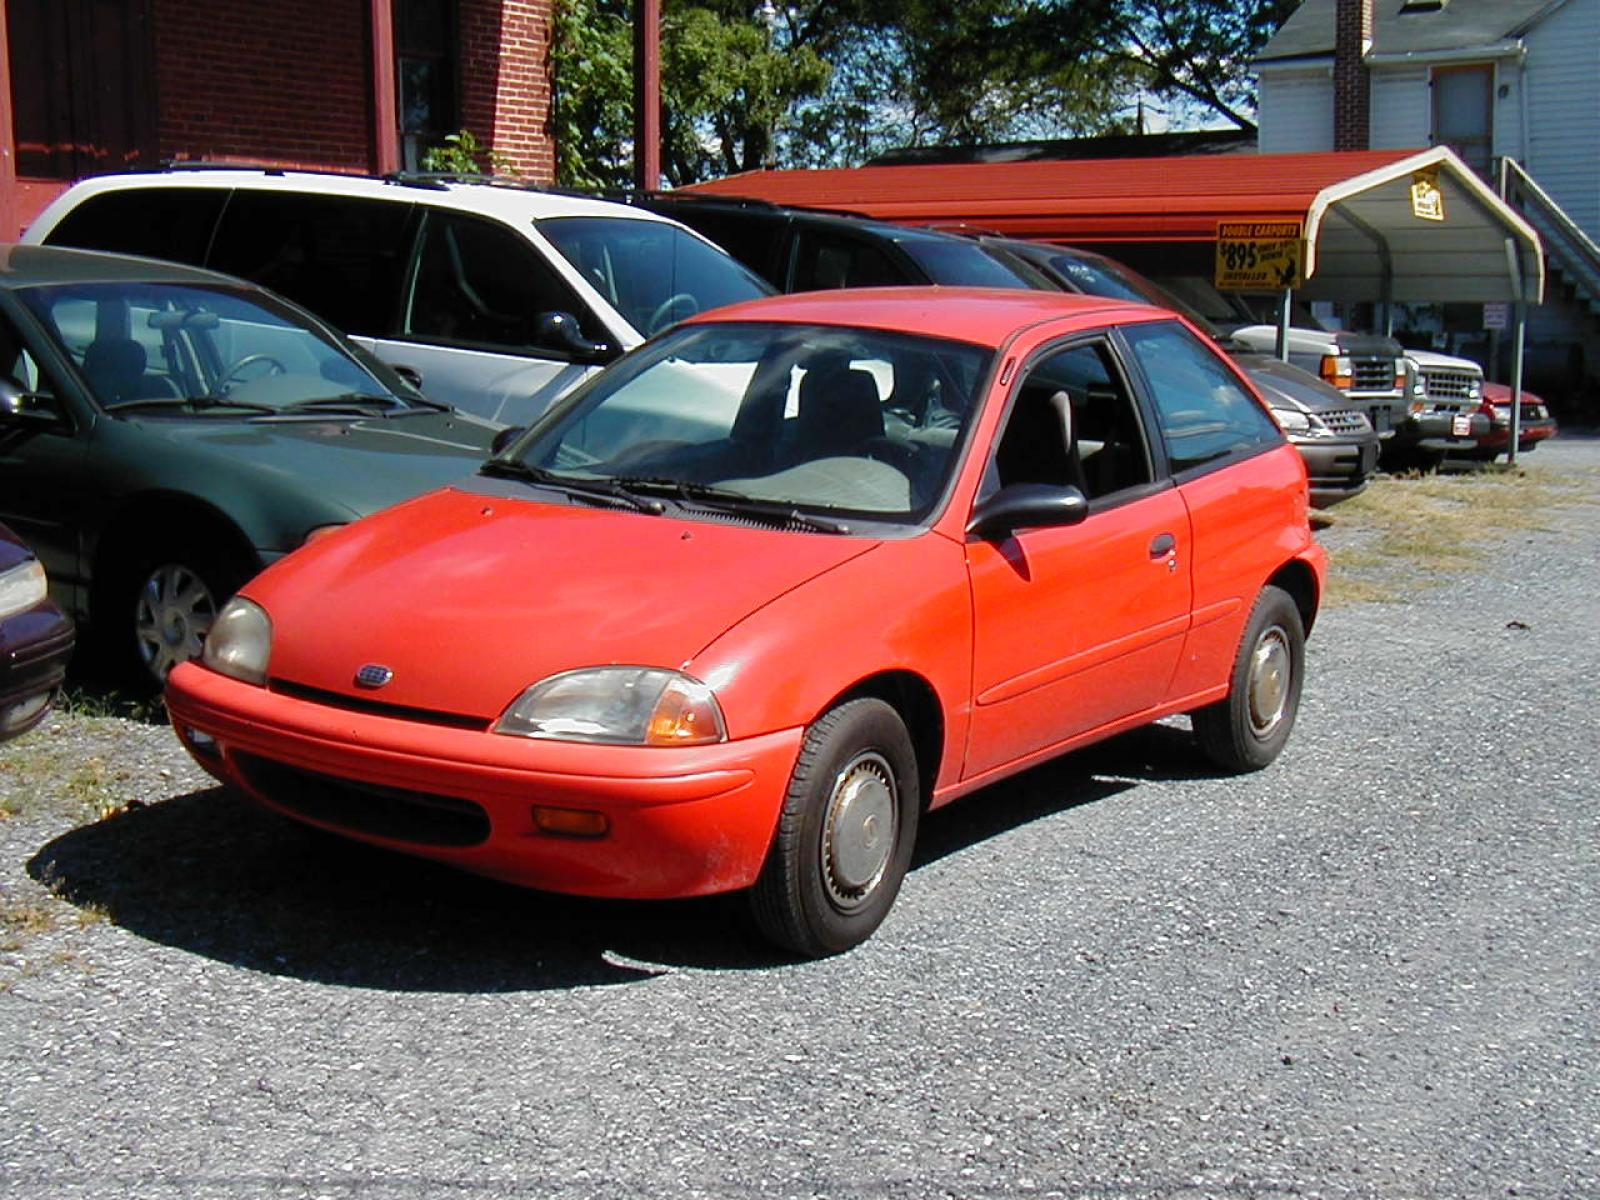 1995 geo metro information and photos zombiedrive 800 1024 1280 1600 origin 1995 geo metro sciox Choice Image